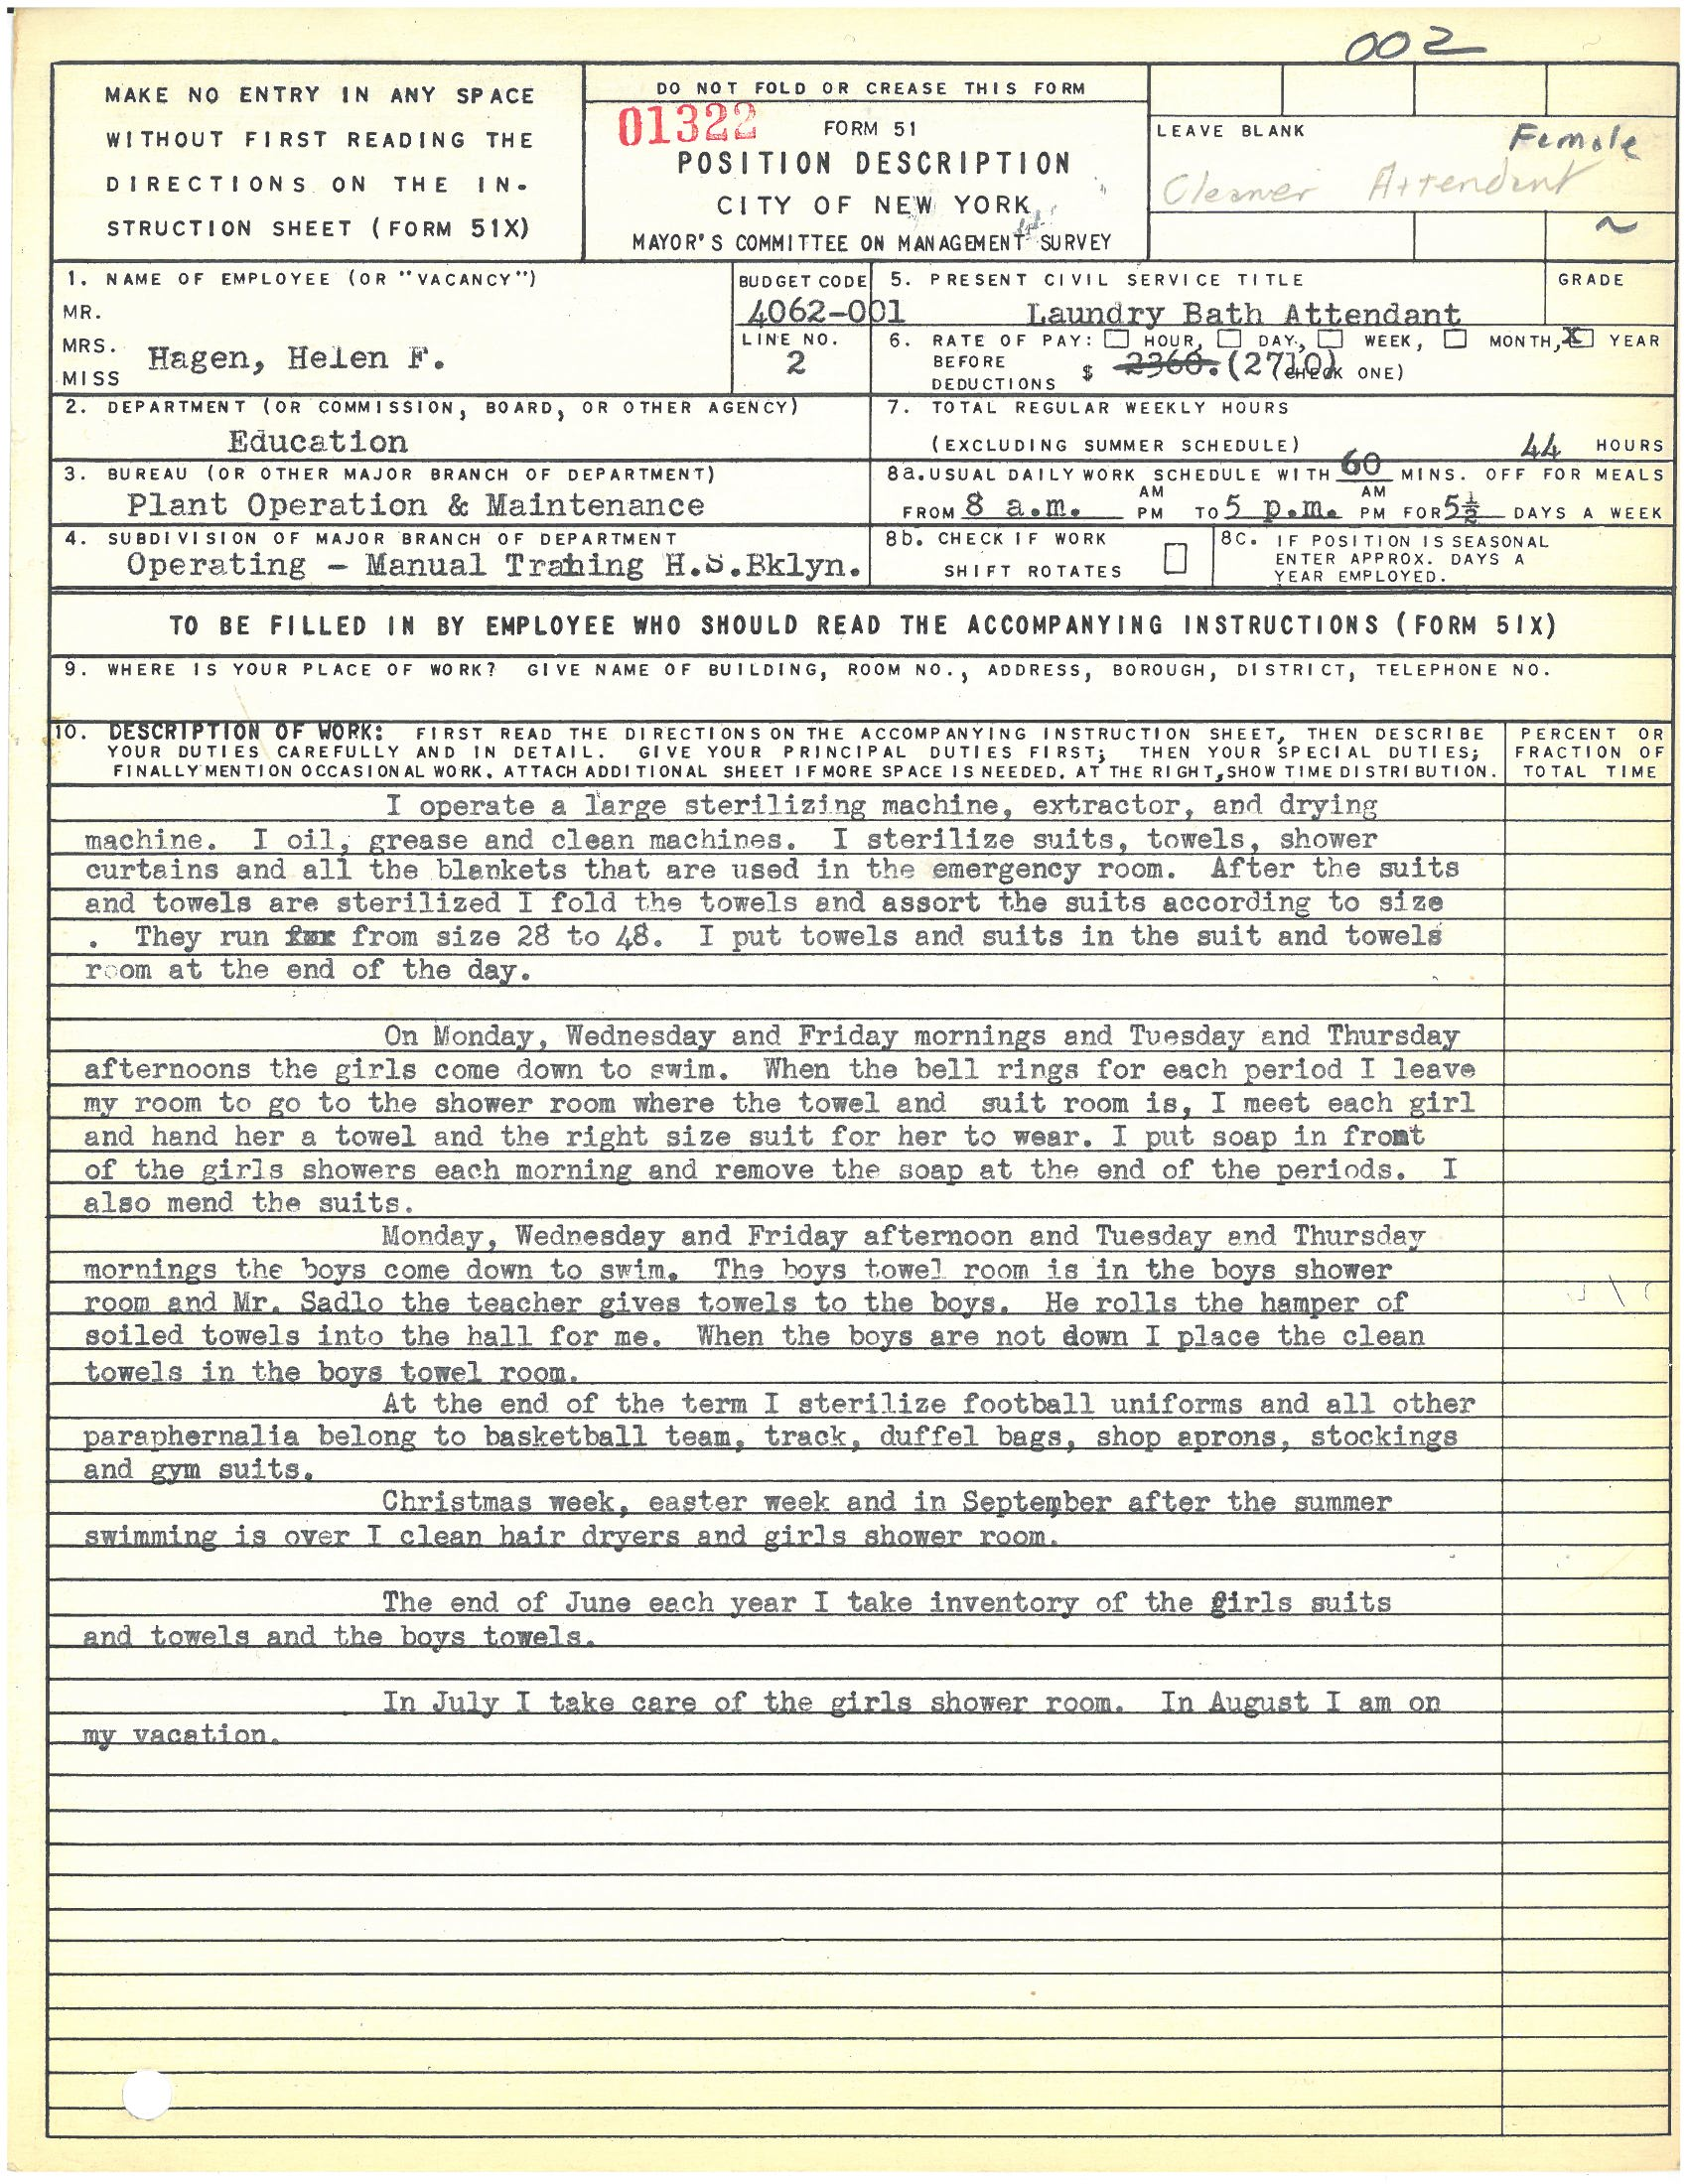 Form 51: Helen F. Hagen, Laundry Bath Attendant, Manual Training High School, Brooklyn. Mayor's Committee on Management Survey, circa 1950. NYC Municipal Archives.